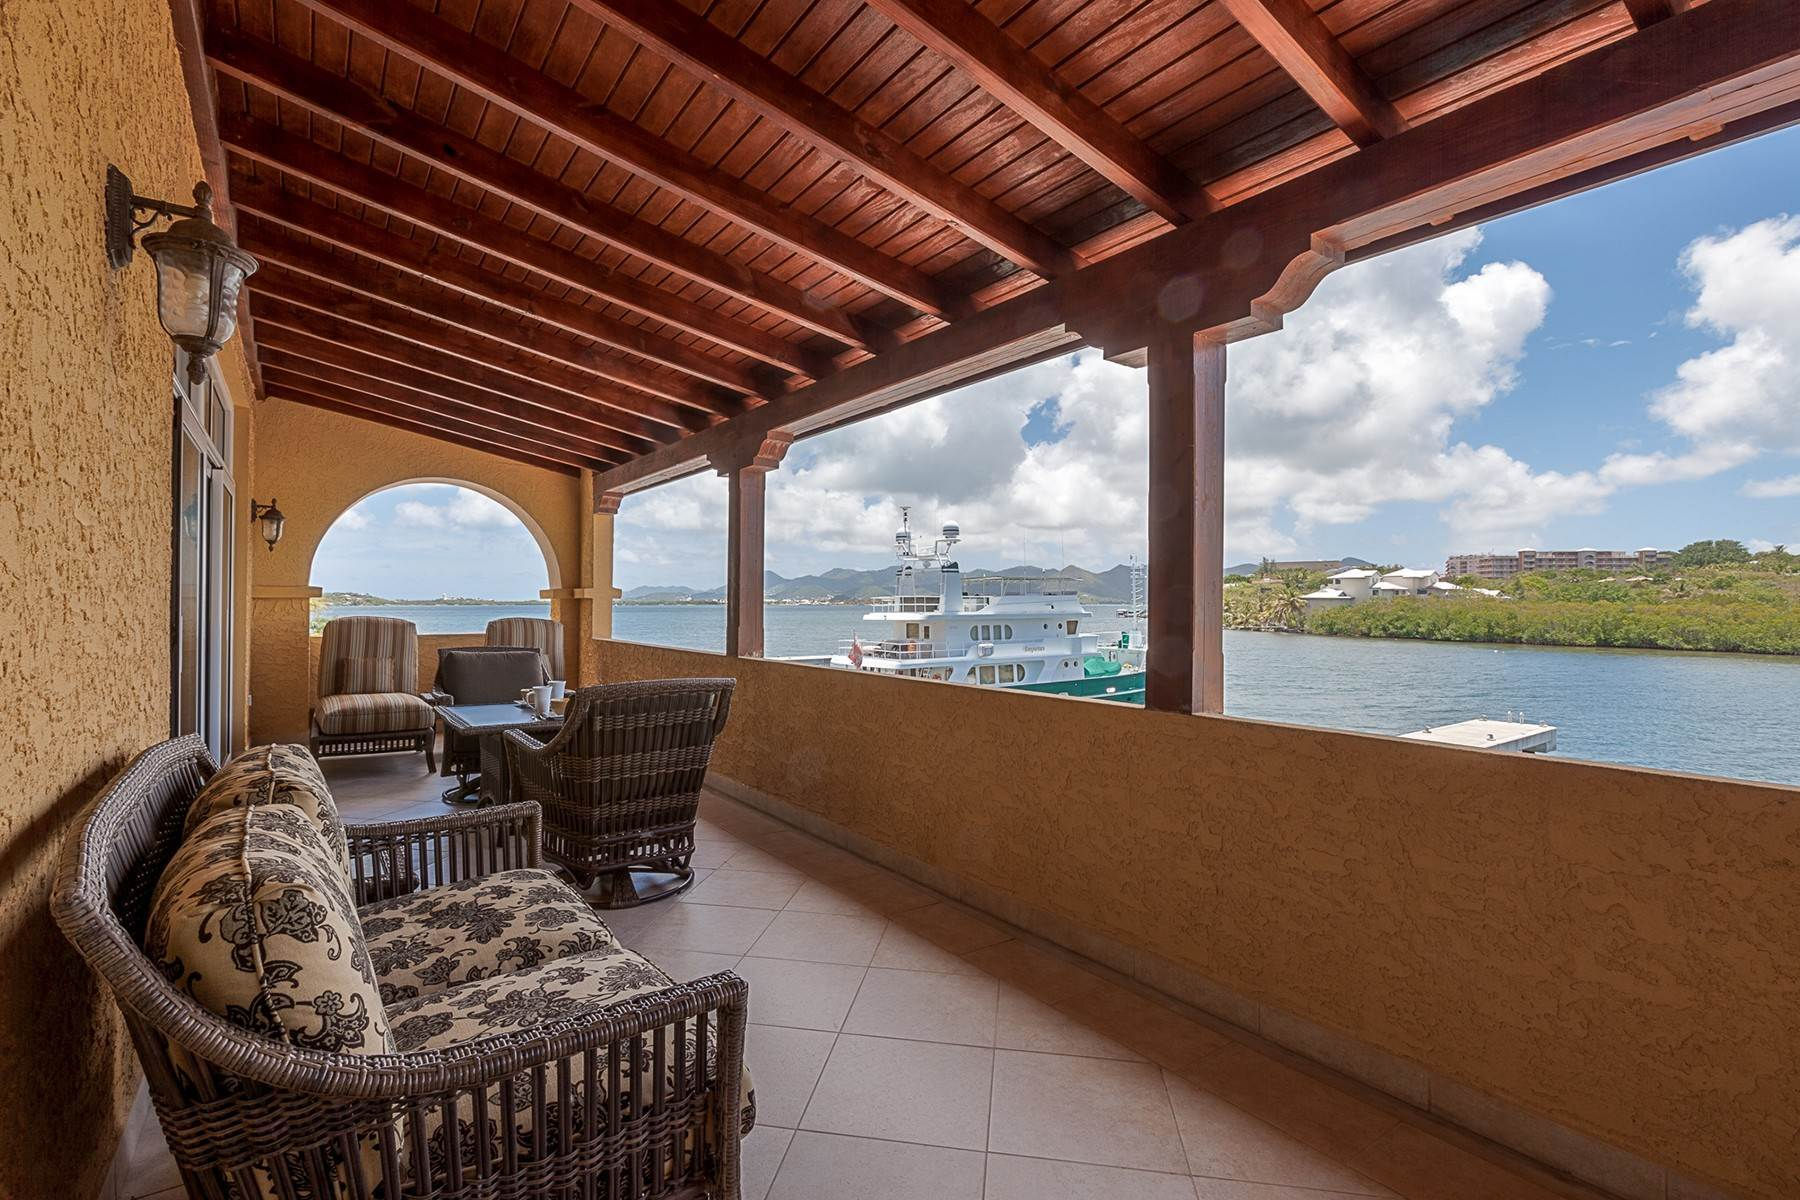 4. Condominiums for Sale at Marina 360 Porto Cupecoy, Cupecoy, St. Maarten